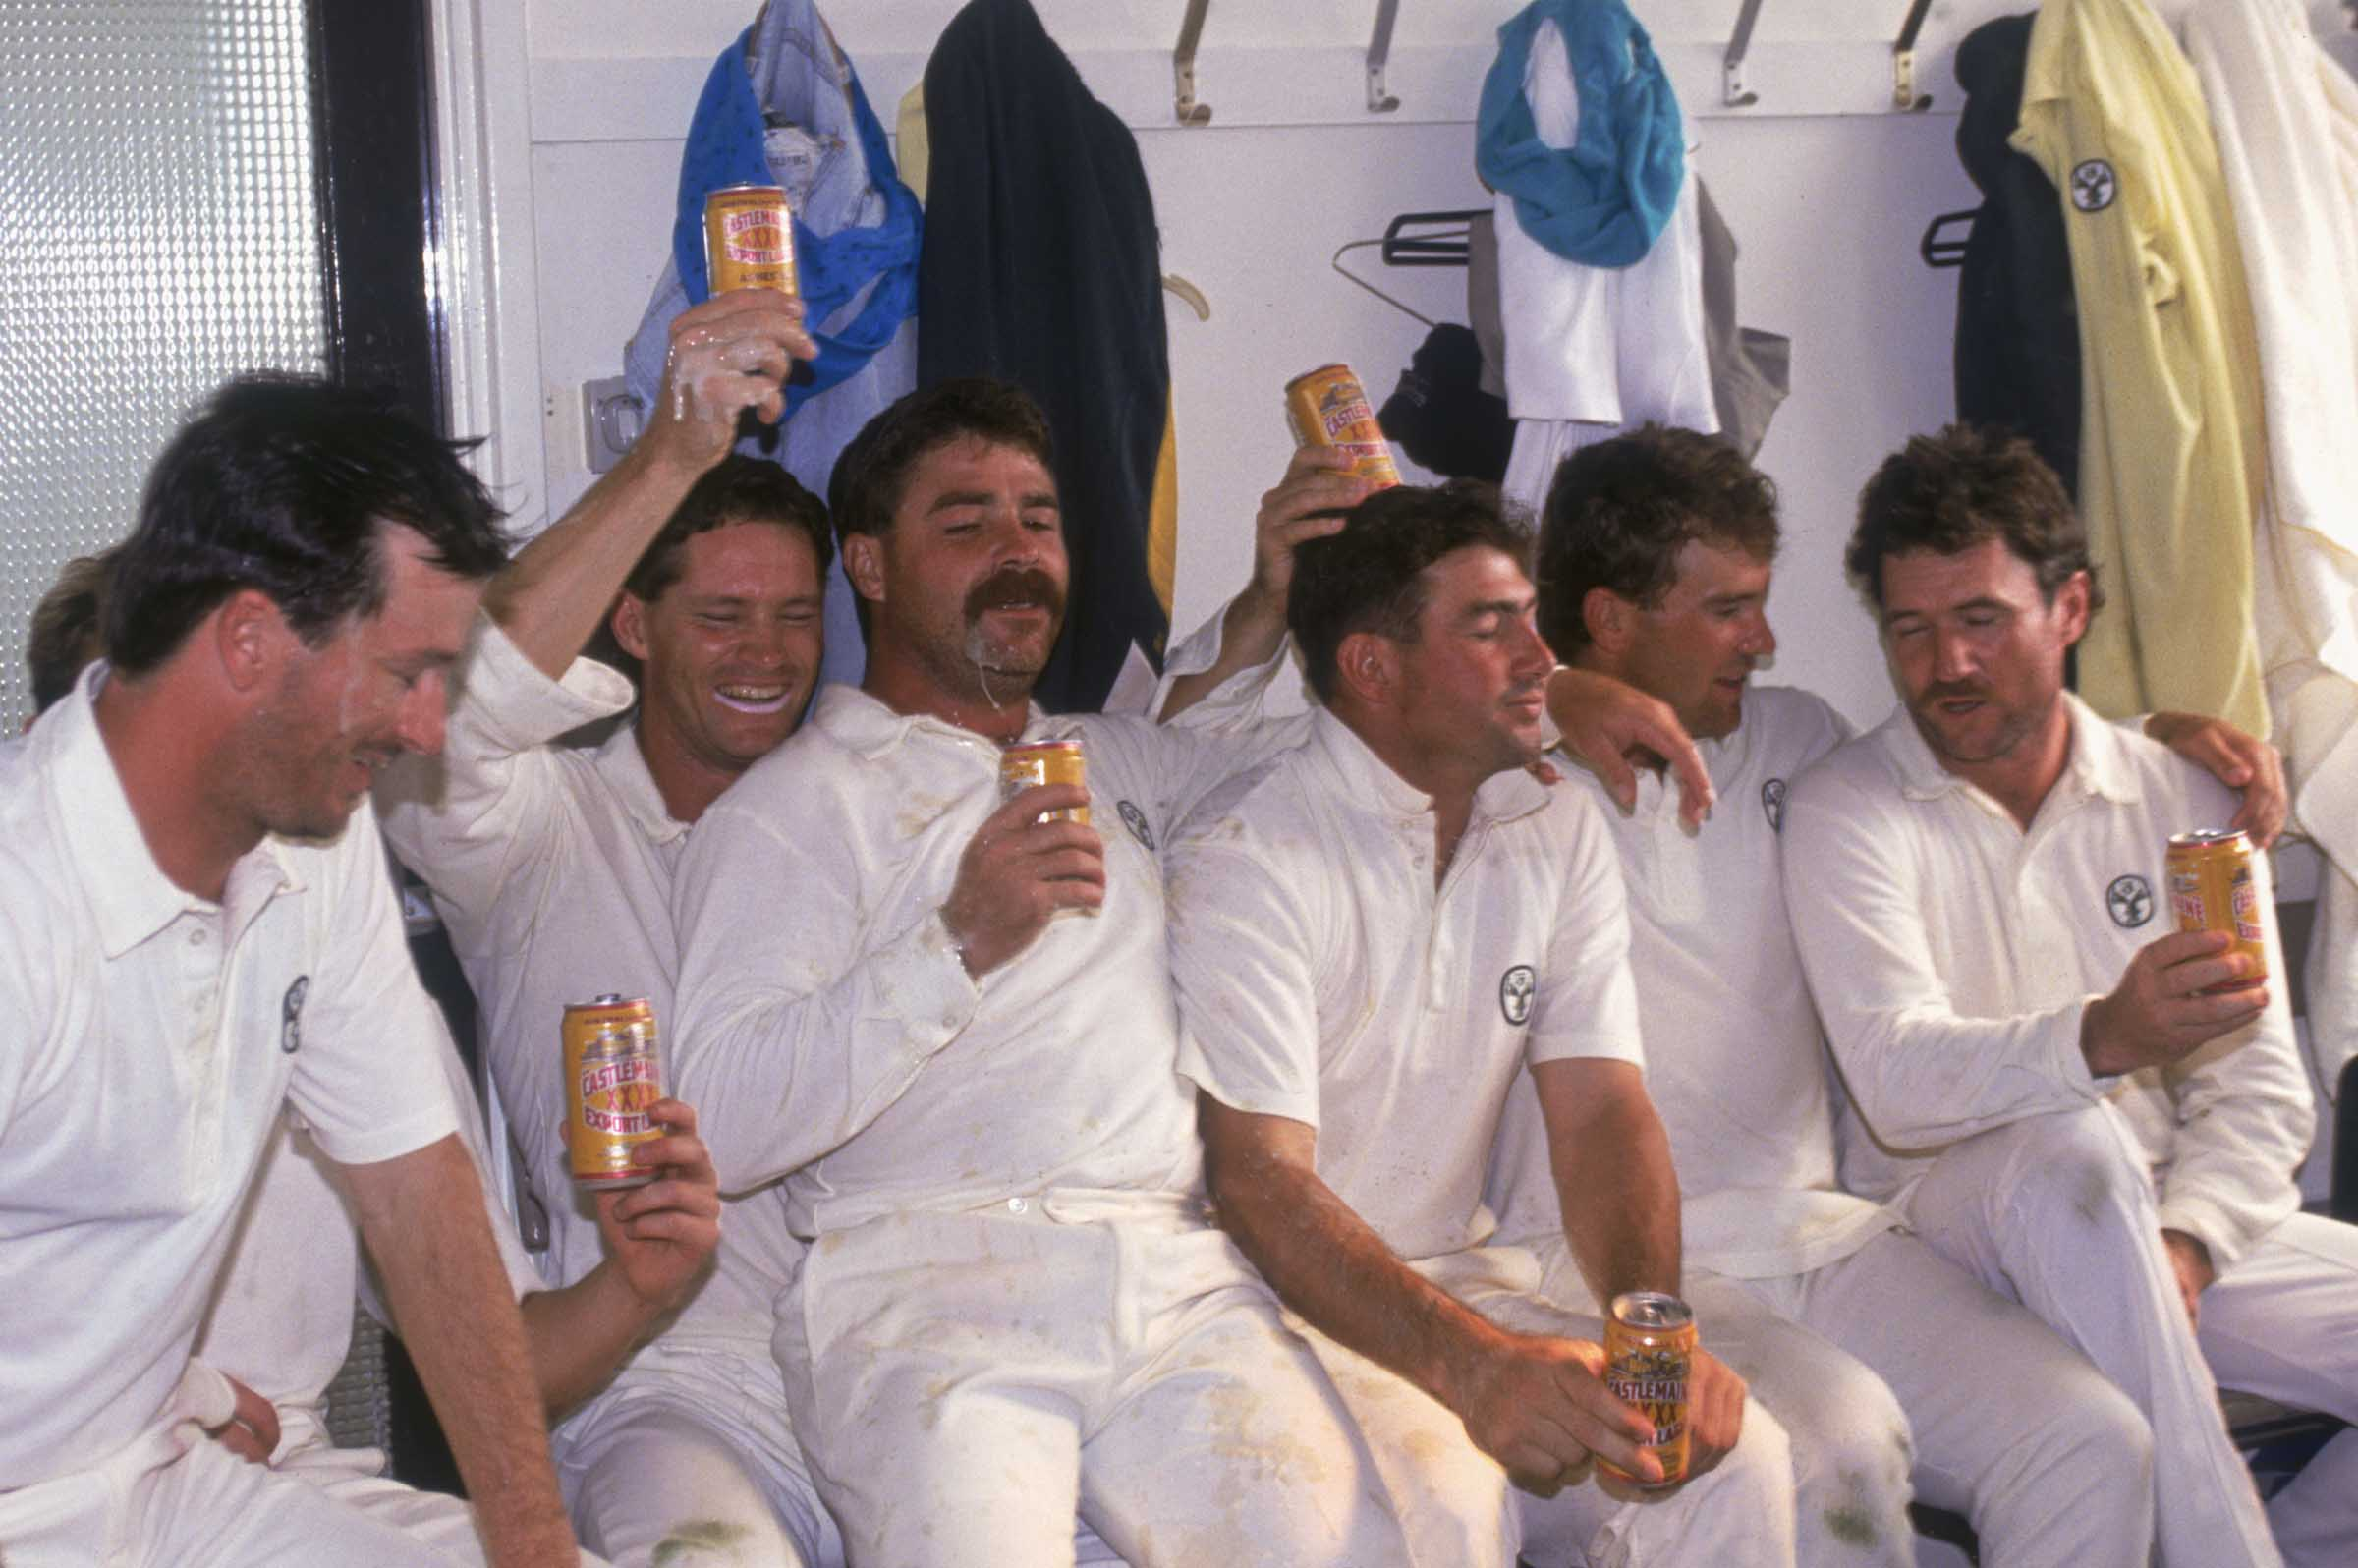 Success in the '89 Ashes marked a turning point in Australian cricket // Getty